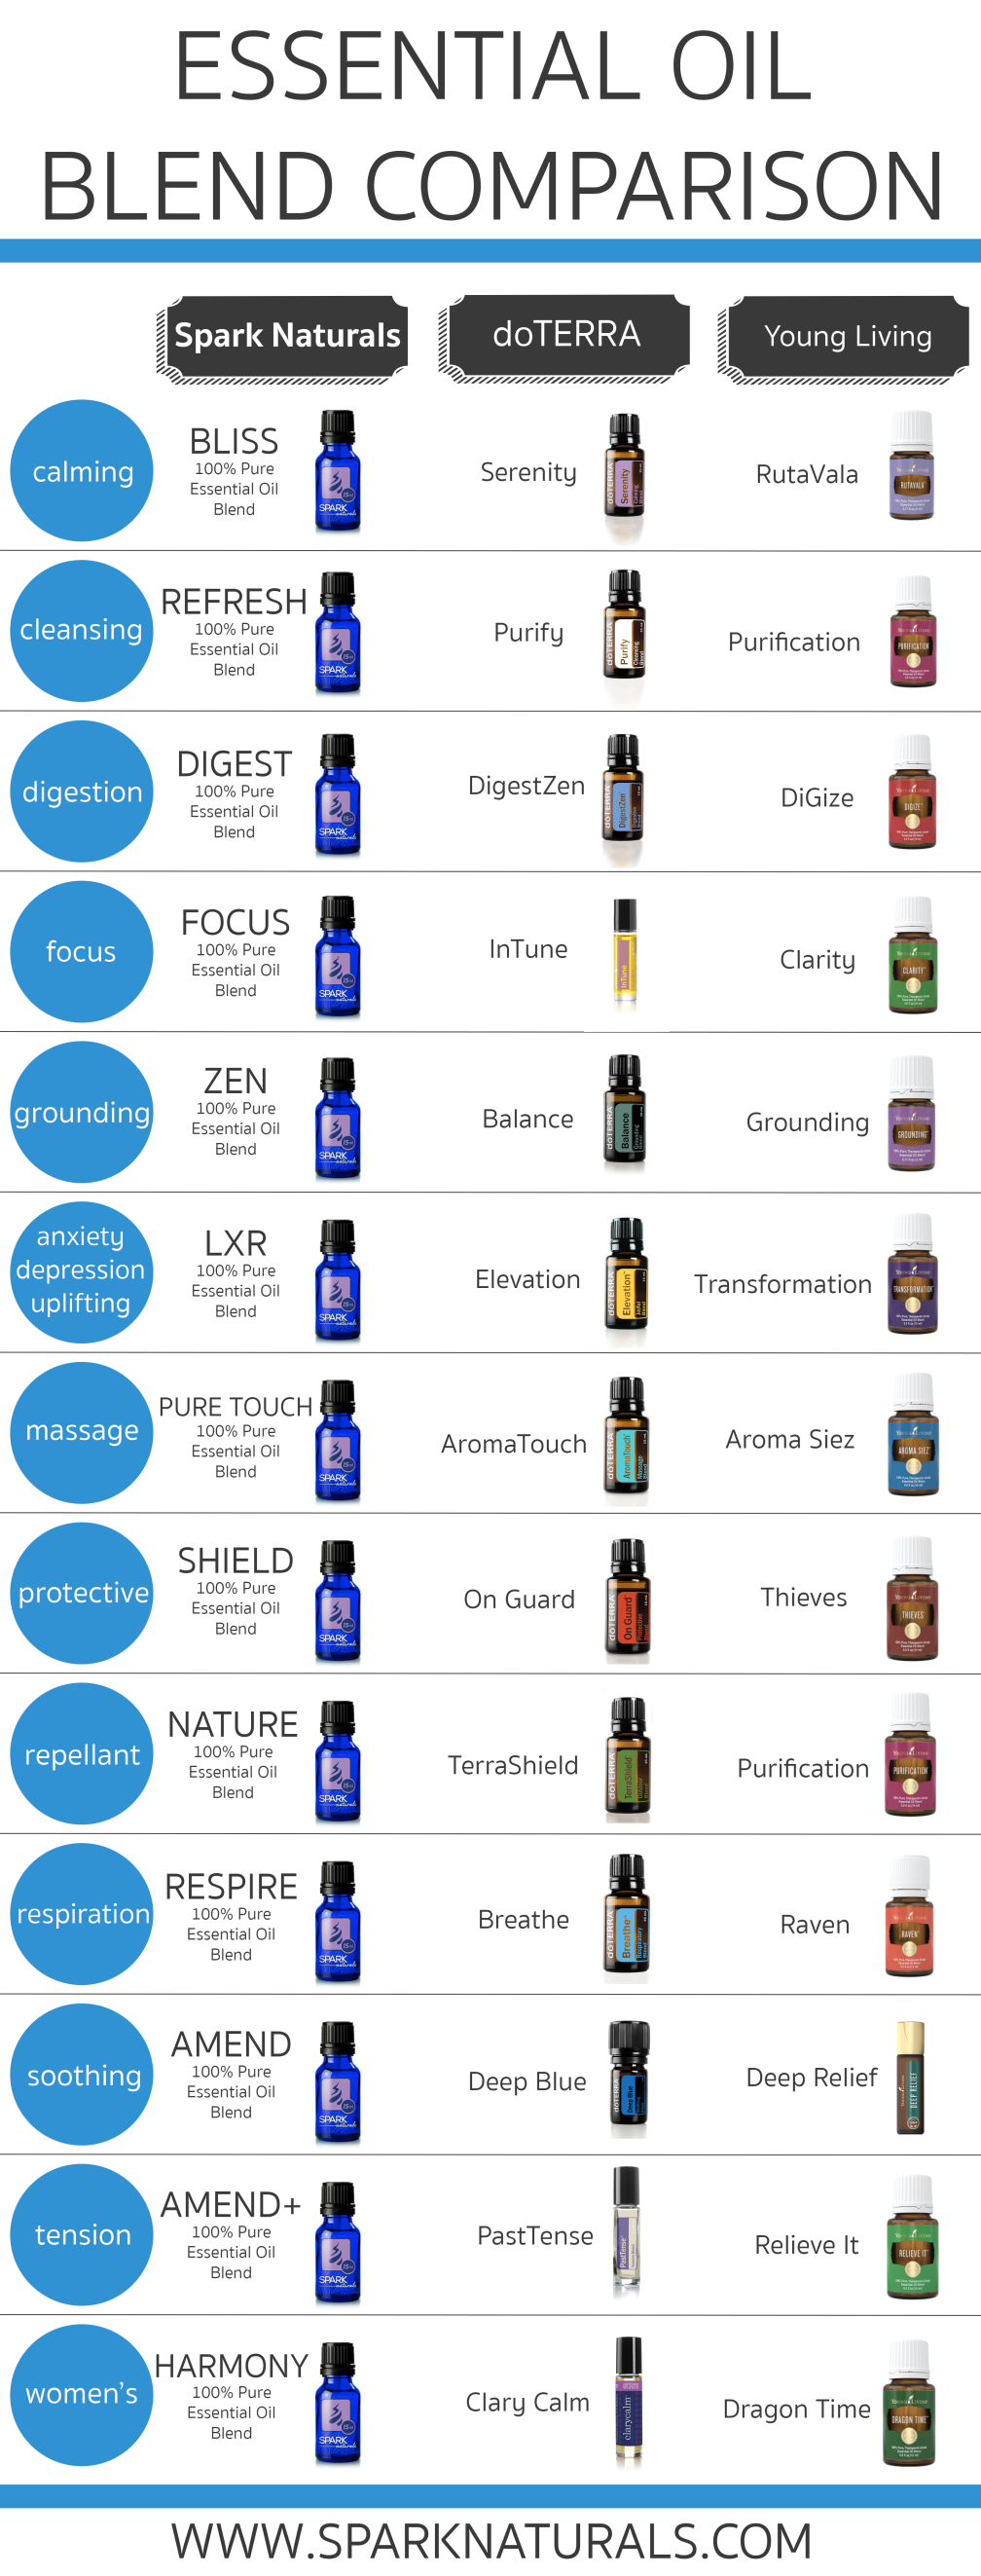 you use DoTerra or Young Living Essential Oil Blends? We offer the same variety of Essential Oil Blends, certified 100% Pure Pharma-Grade, but often times for a fraction of the cost to you ̵…